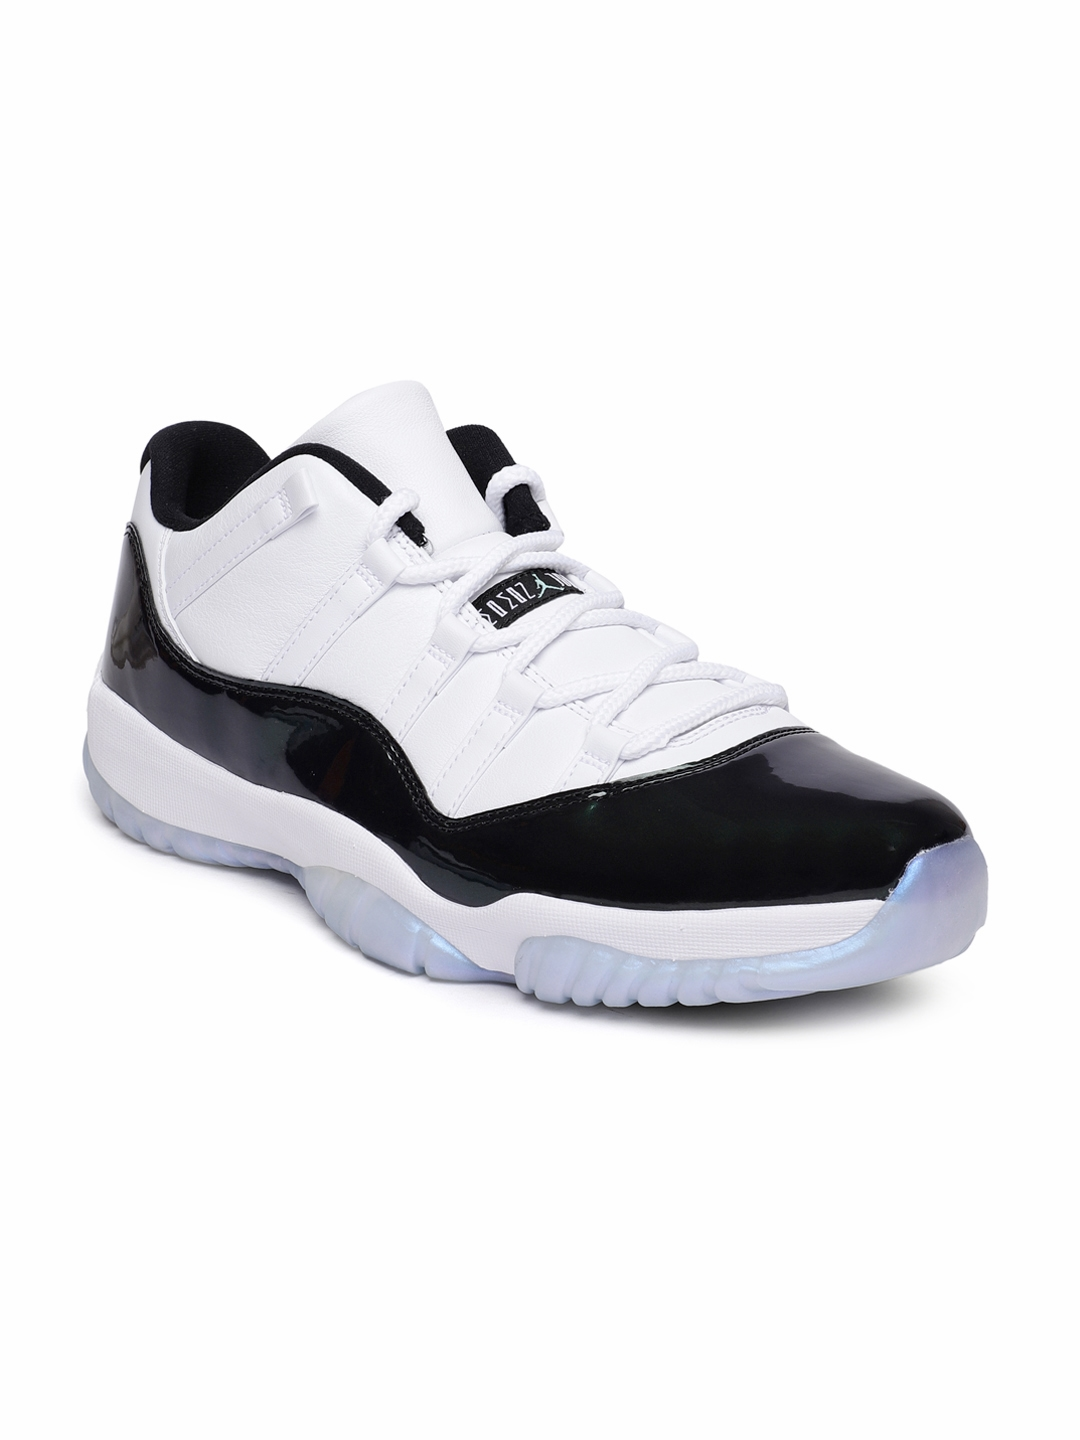 d1a8c8a18a0 Nike Men White   Black Air Jordan 11 Retro Low Leather Basketball Shoes